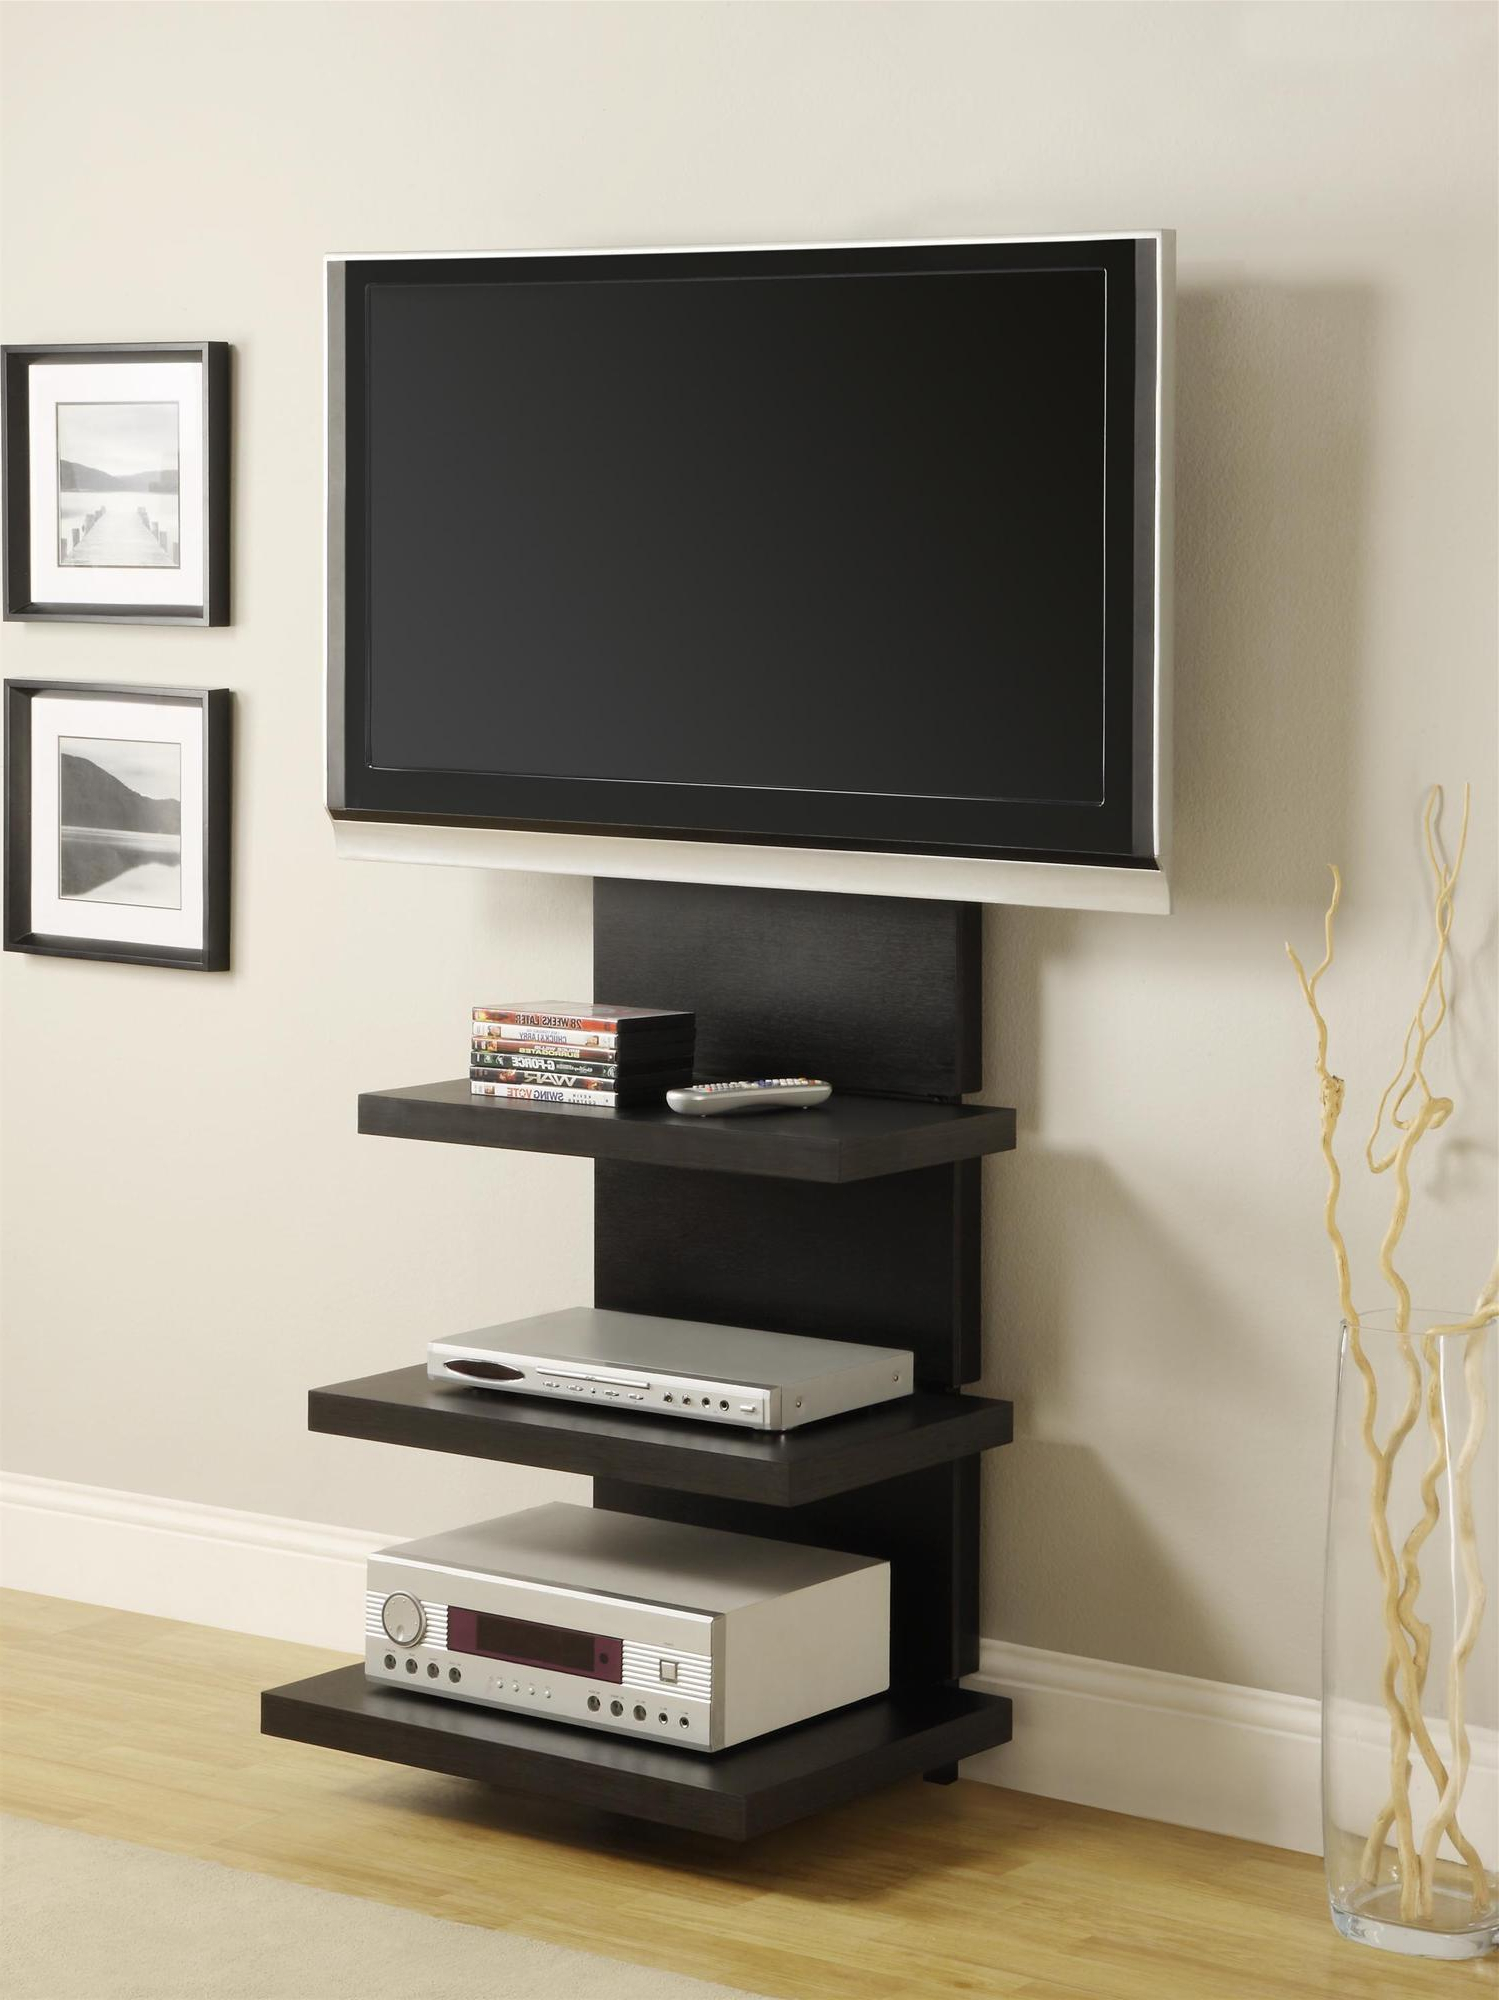 Sleek Tv Stands Pertaining To Latest Design A Sleek New Space For Your Home Theater Without The Hassle Or (View 14 of 20)